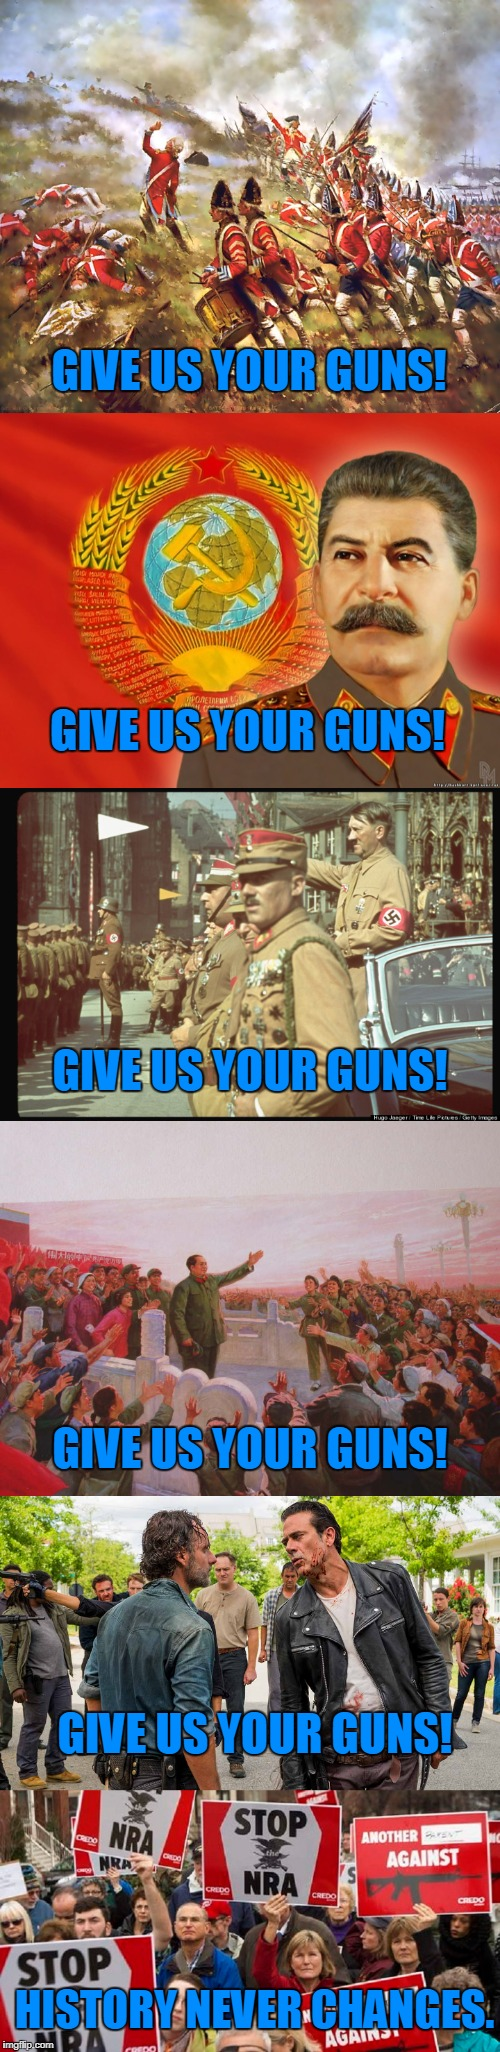 Never Met a Good Guy That Wants To Disarm The People | GIVE US YOUR GUNS! HISTORY NEVER CHANGES. GIVE US YOUR GUNS! GIVE US YOUR GUNS! GIVE US YOUR GUNS! GIVE US YOUR GUNS! | image tagged in history,disarming the citizen,bad guys | made w/ Imgflip meme maker